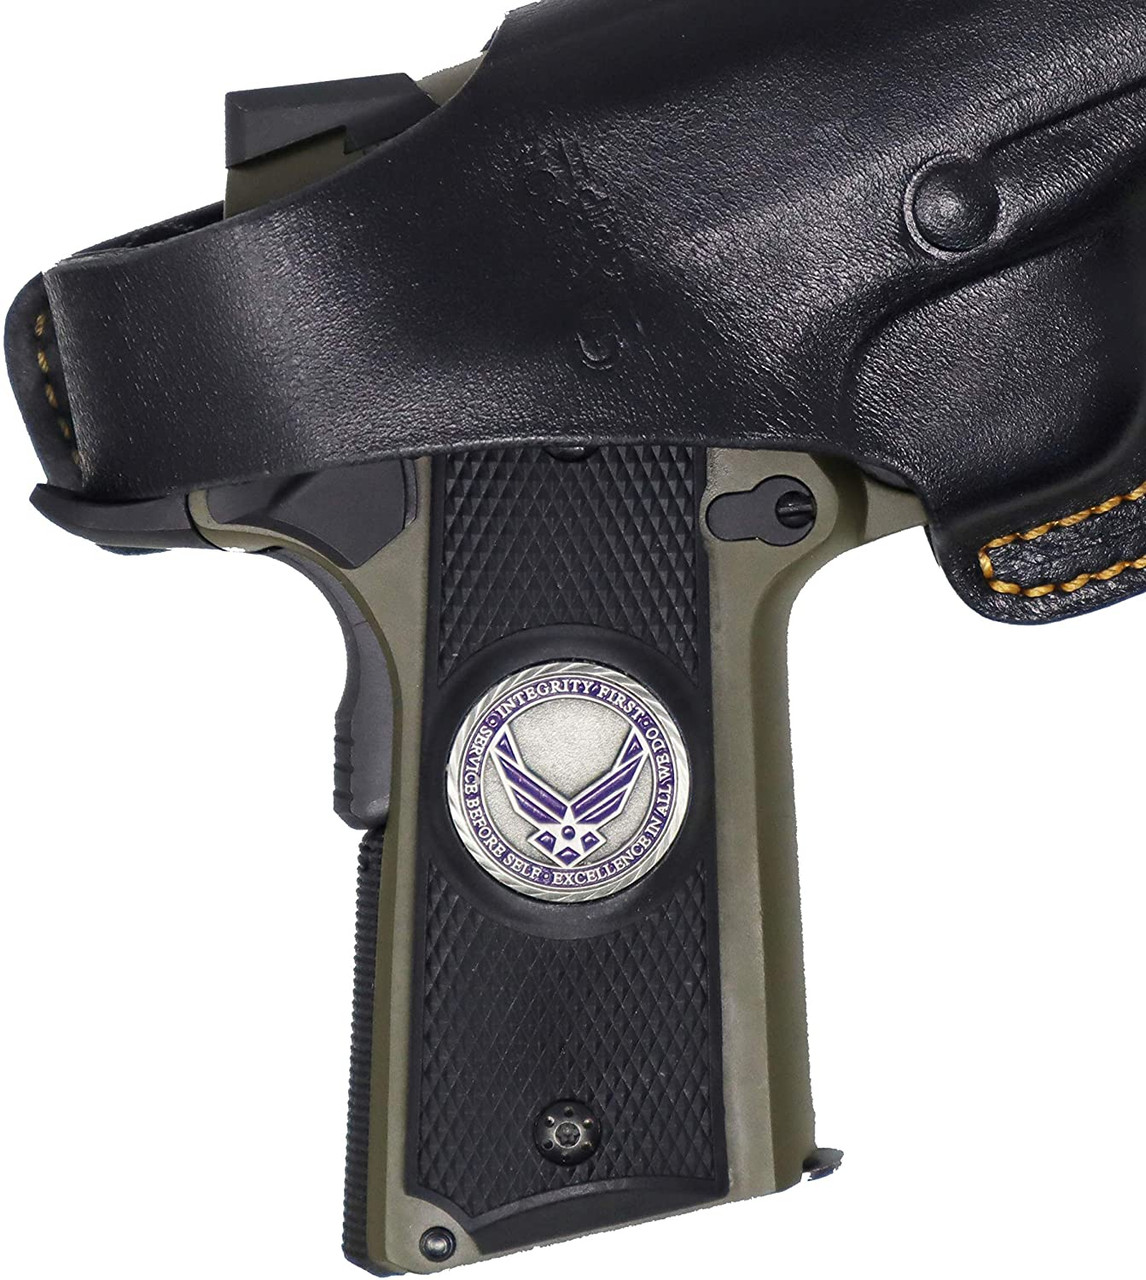 Garrison Grip 1911 Colt Full Size and Clones with US AIR Force Pewter Medallion Set in Ebony Black Color Polymer Grips